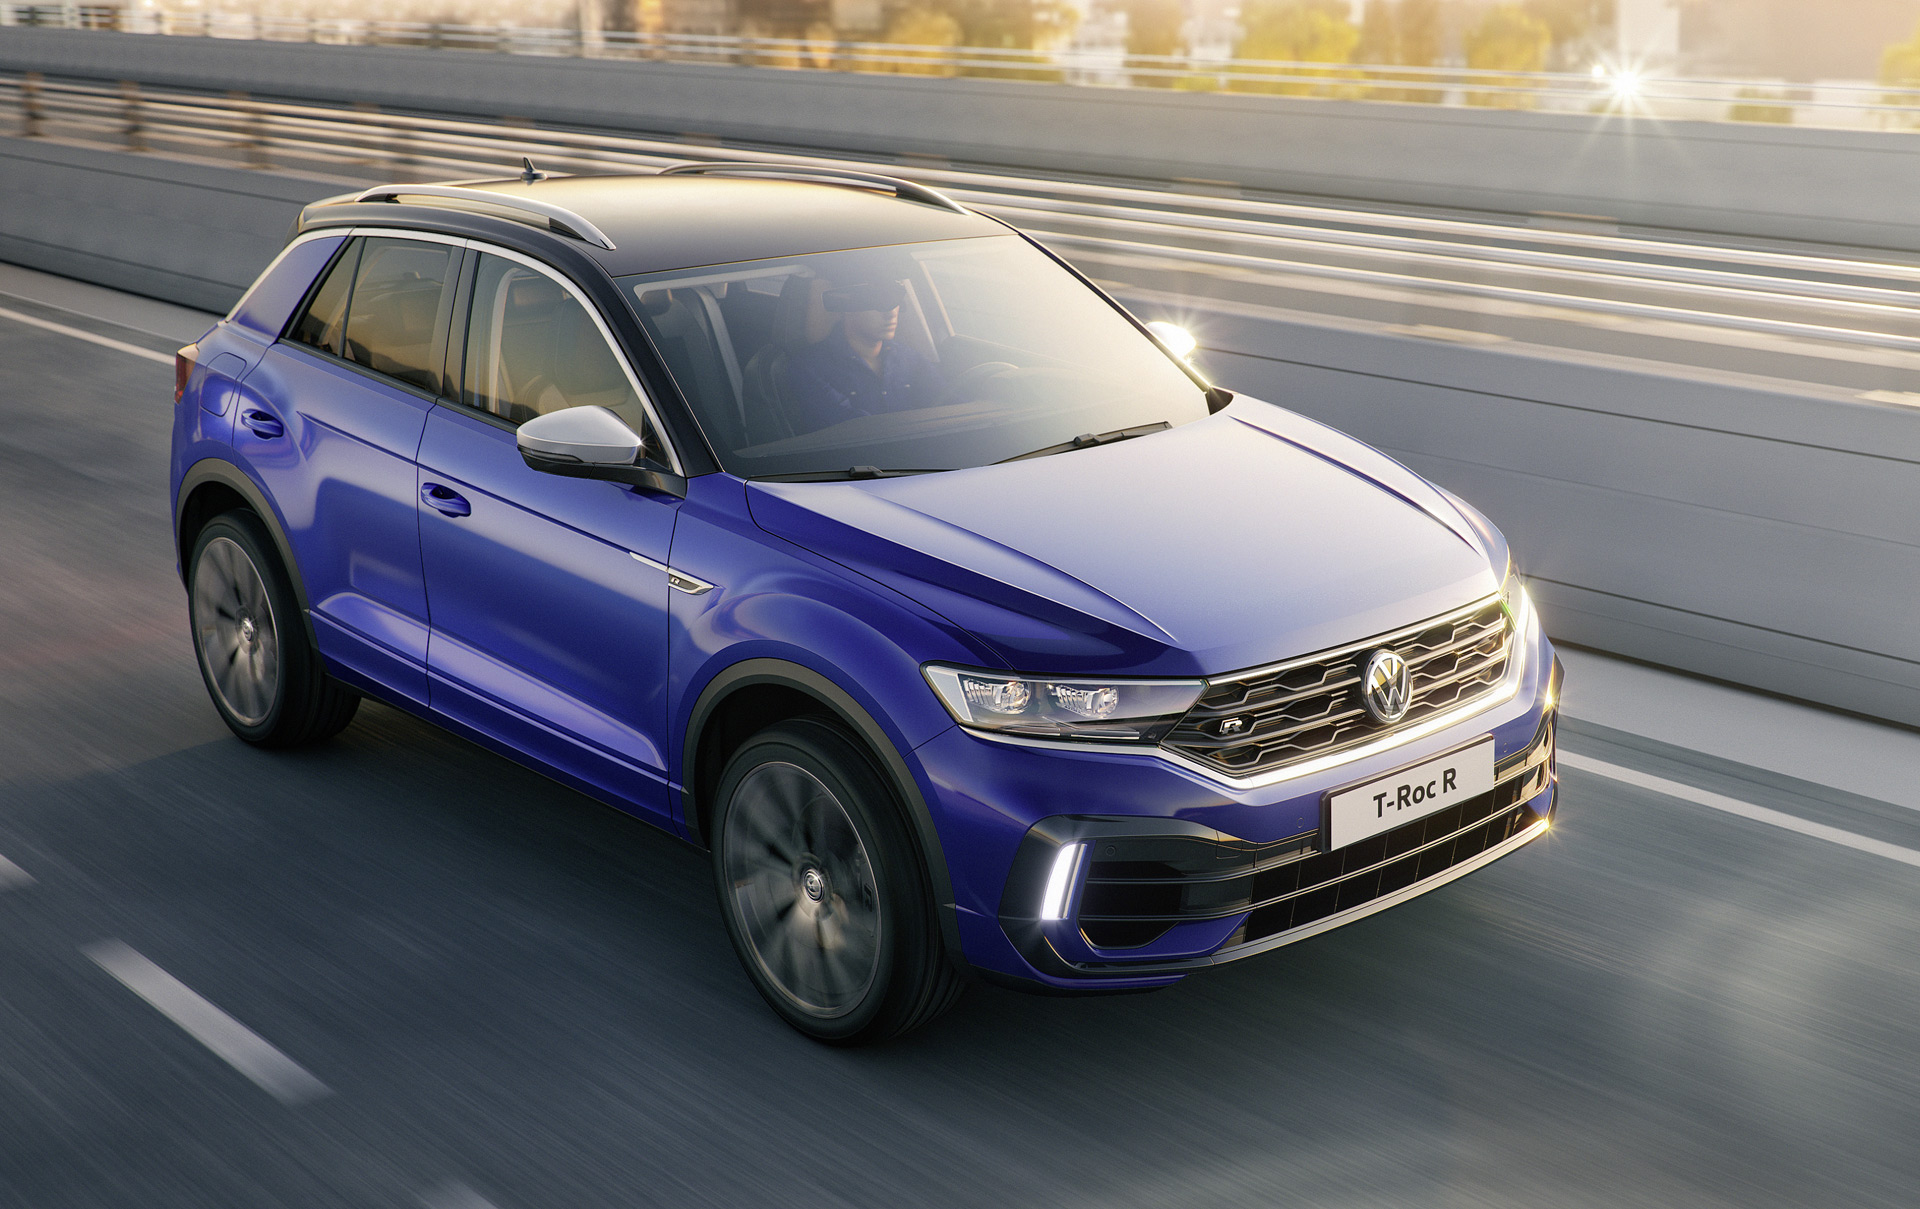 2019 Volkswagen T-Roc R Front Three-Quarter Wallpaper (1)